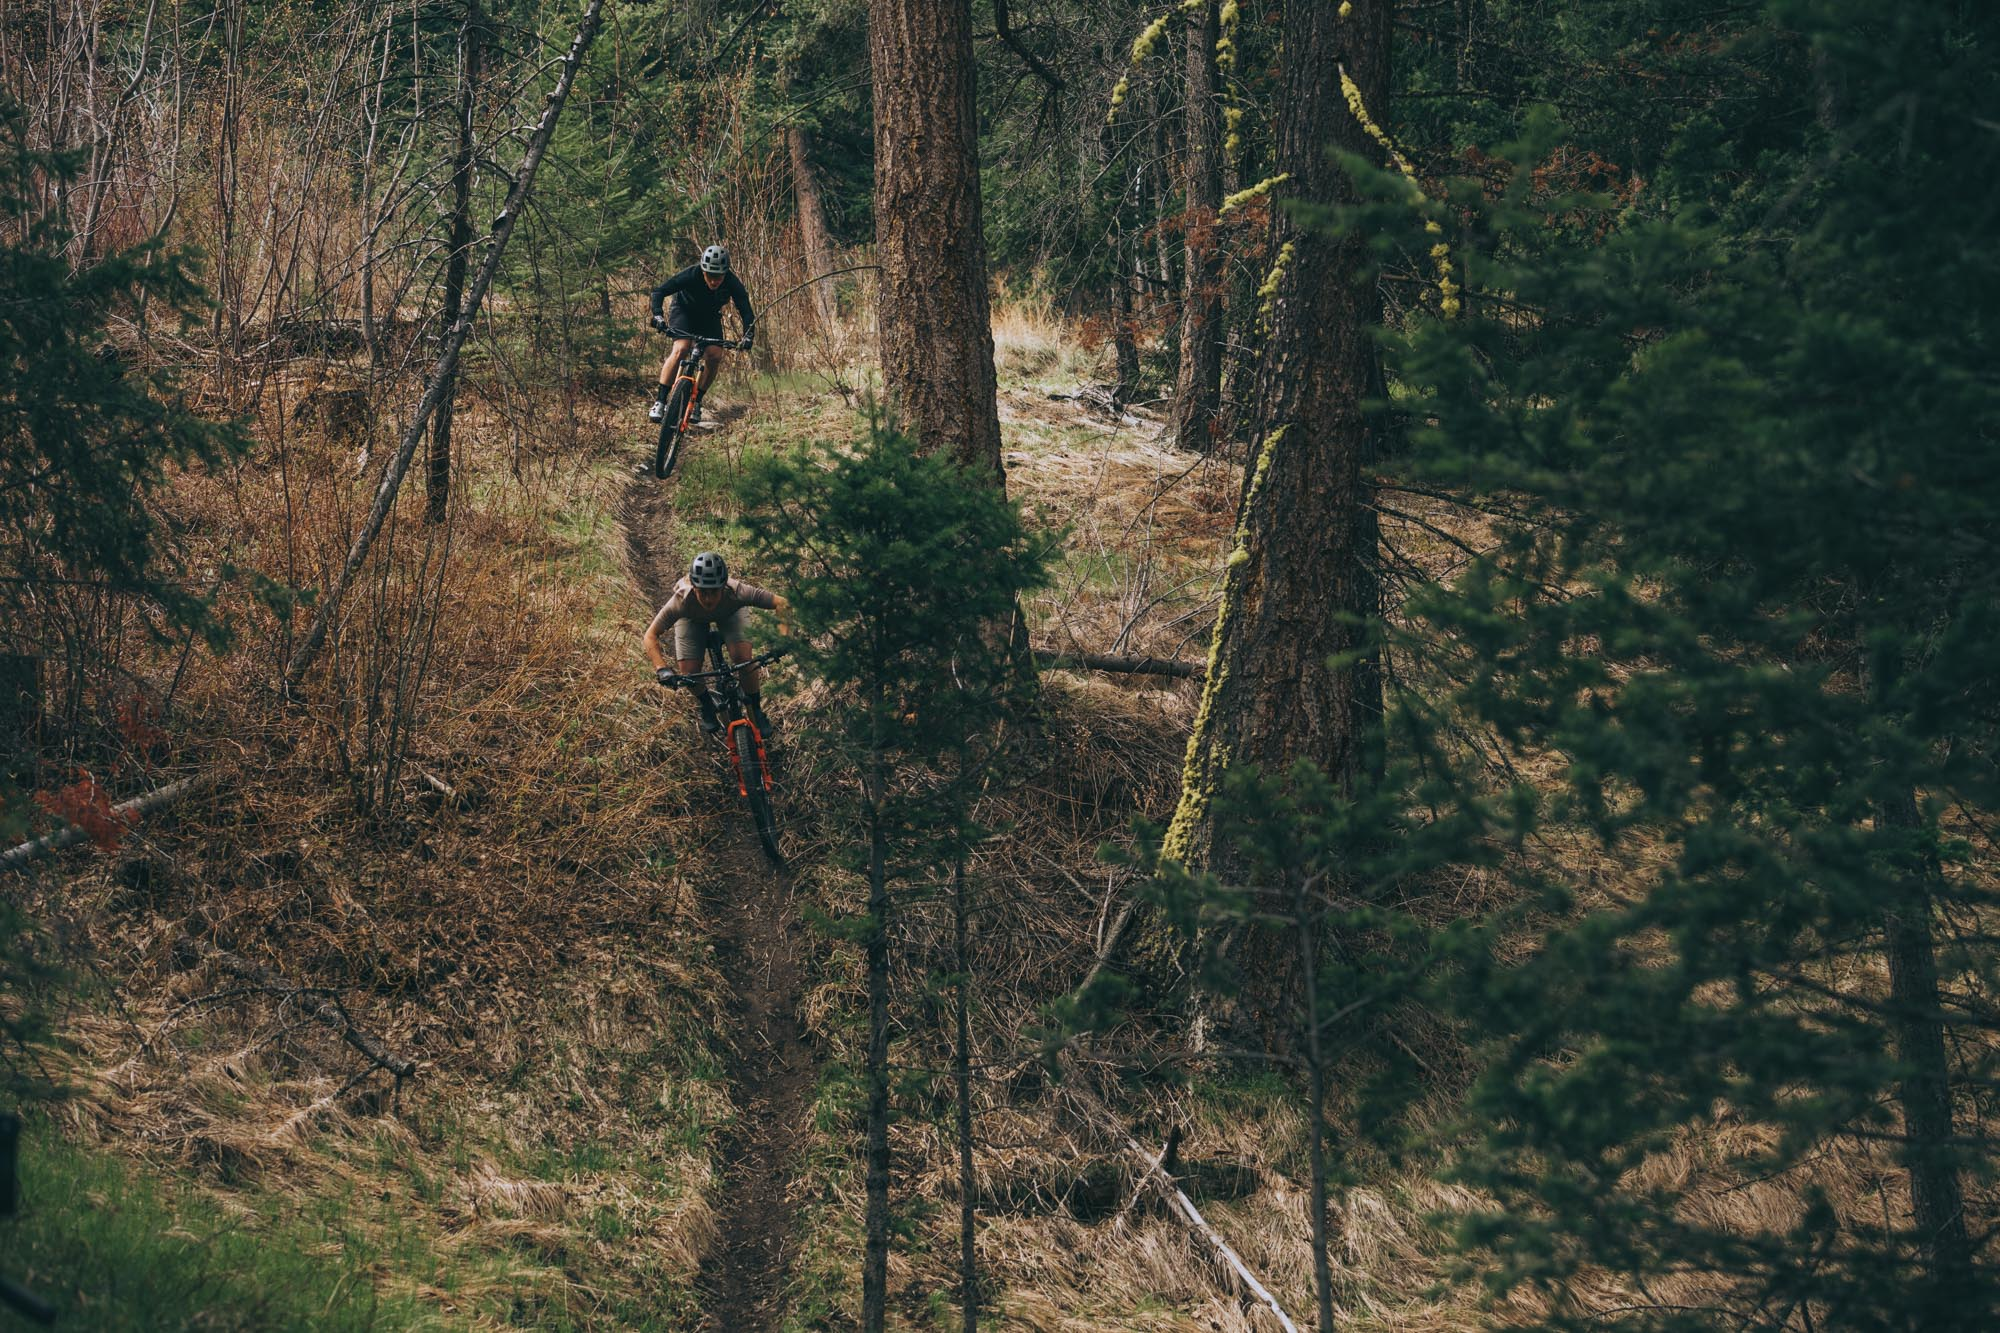 Andreane Lanthier Nadeau and Remi Gauvin ride the Element in British Columbia, Canada